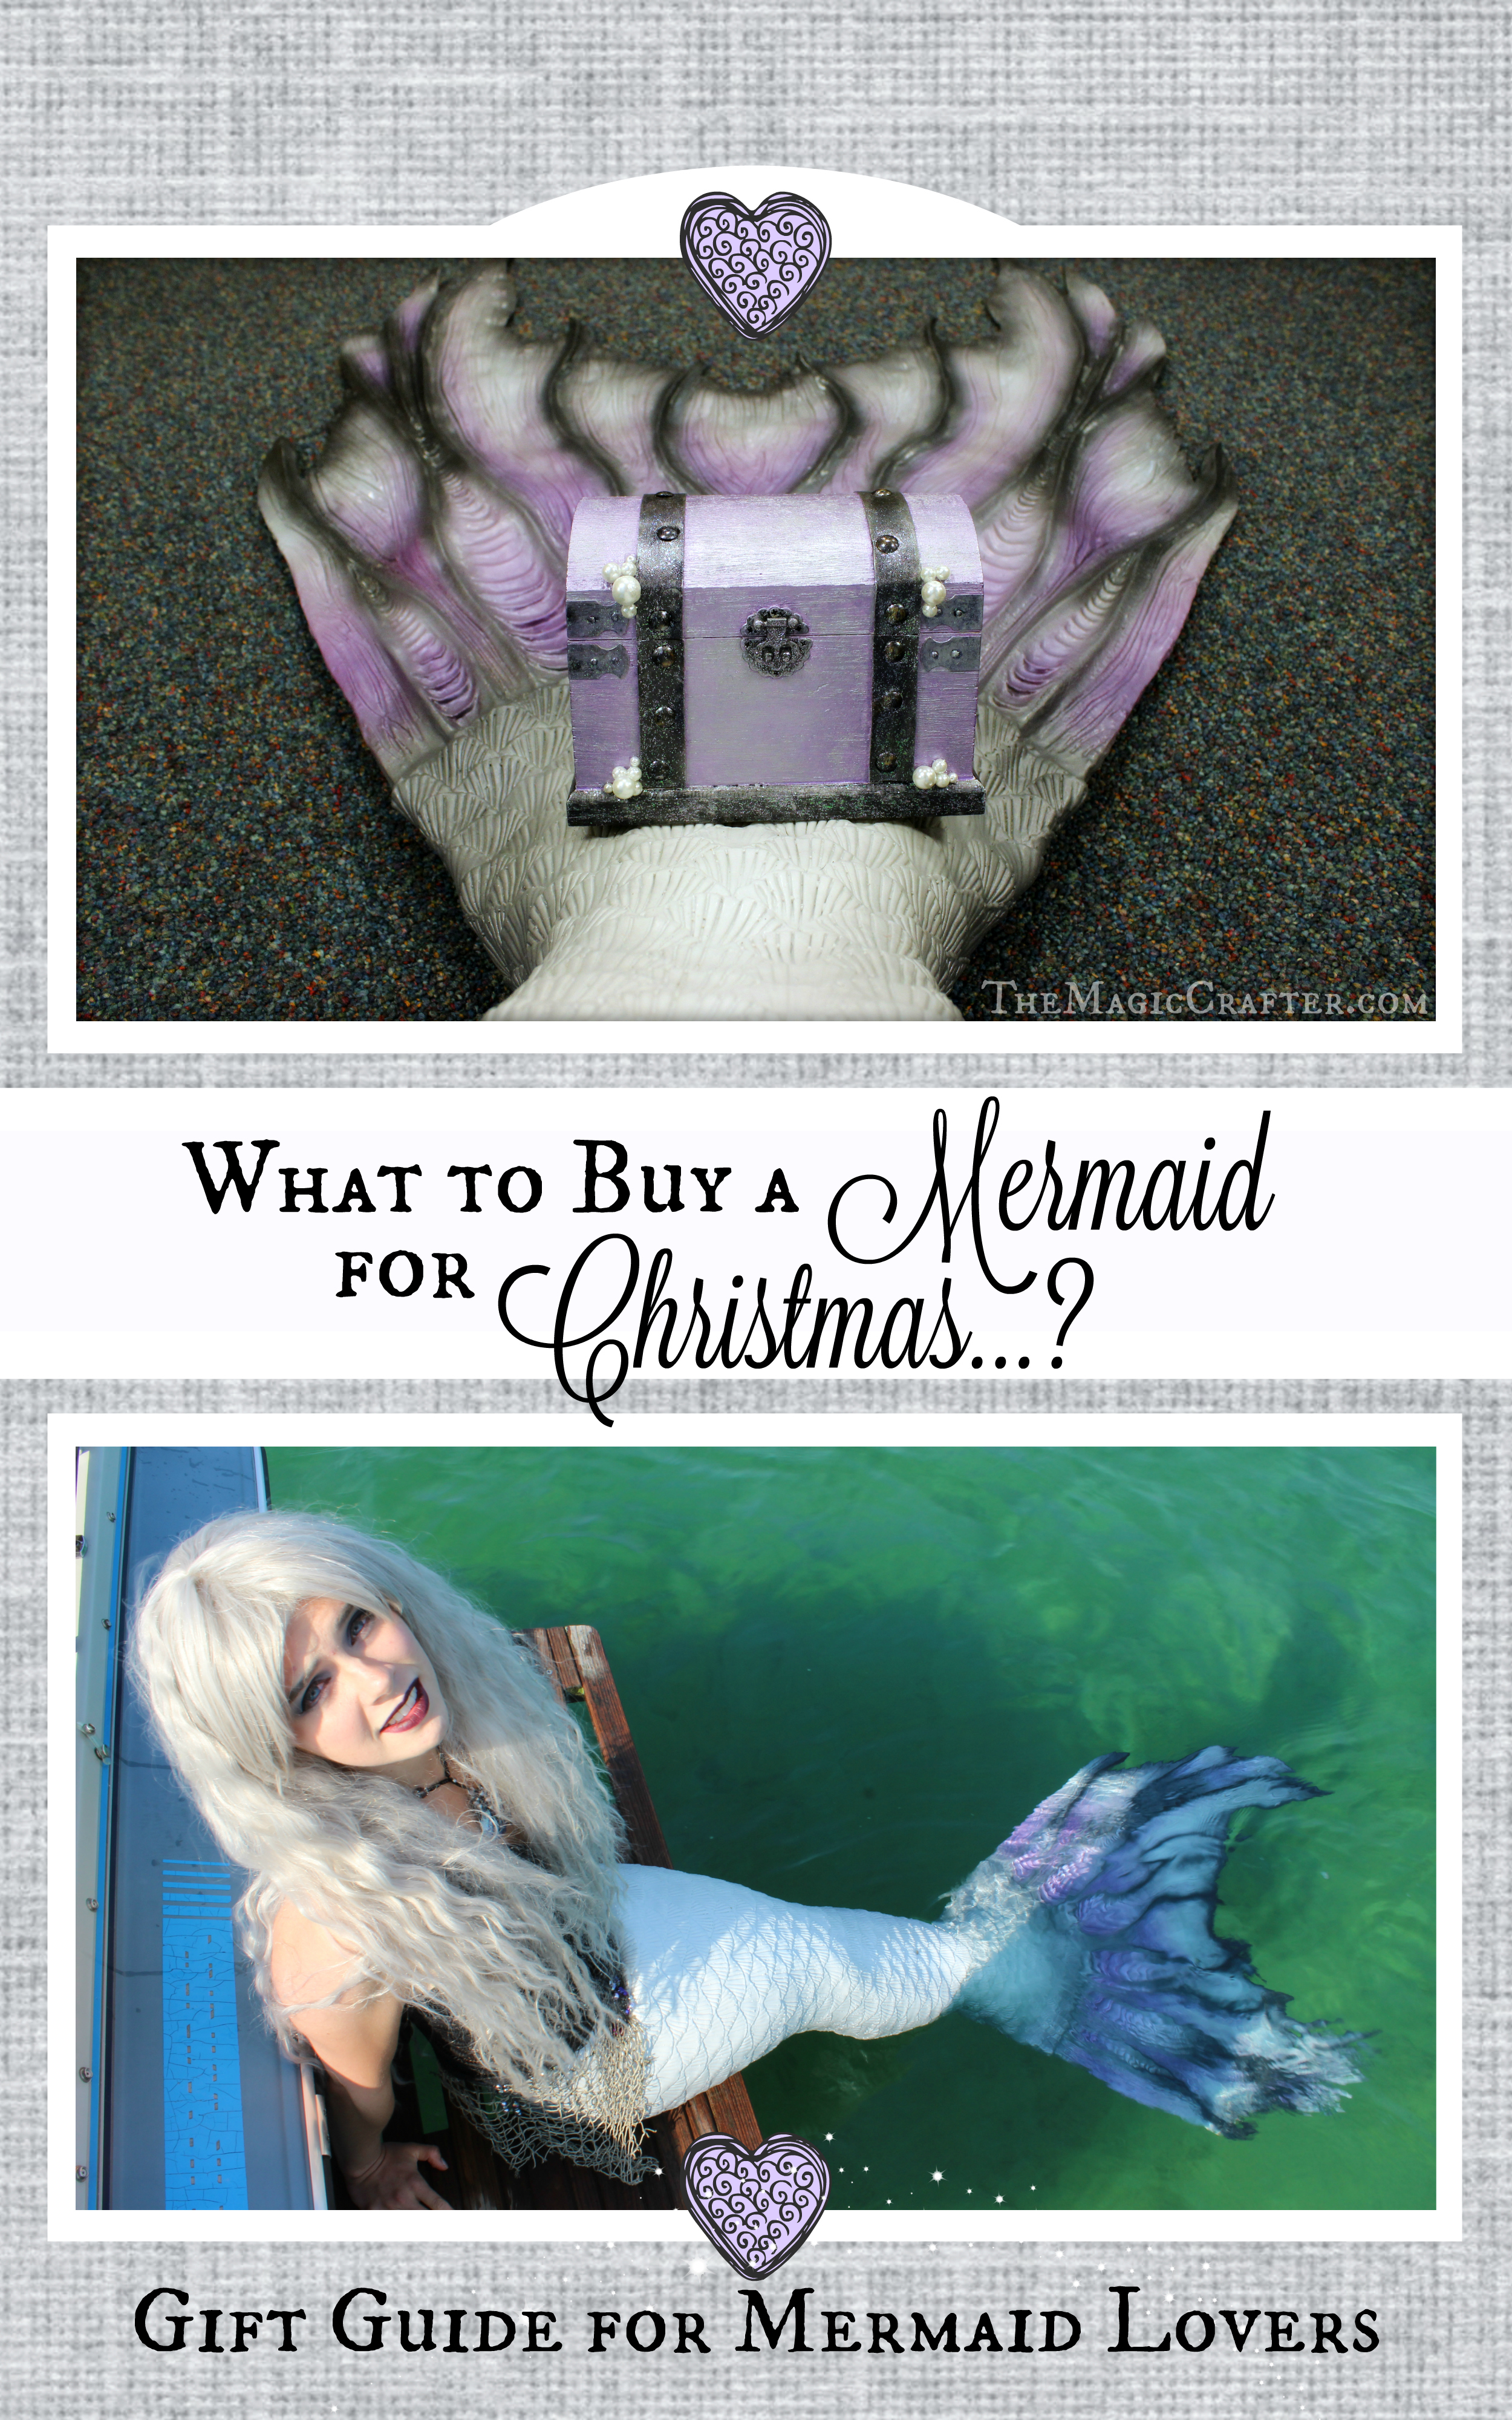 A Gift Guide for Mermaids- What to buy someone for Christmas that loves mermaids? Come to www.TheMagicCrafter.com for Holiday gift ideas galor!